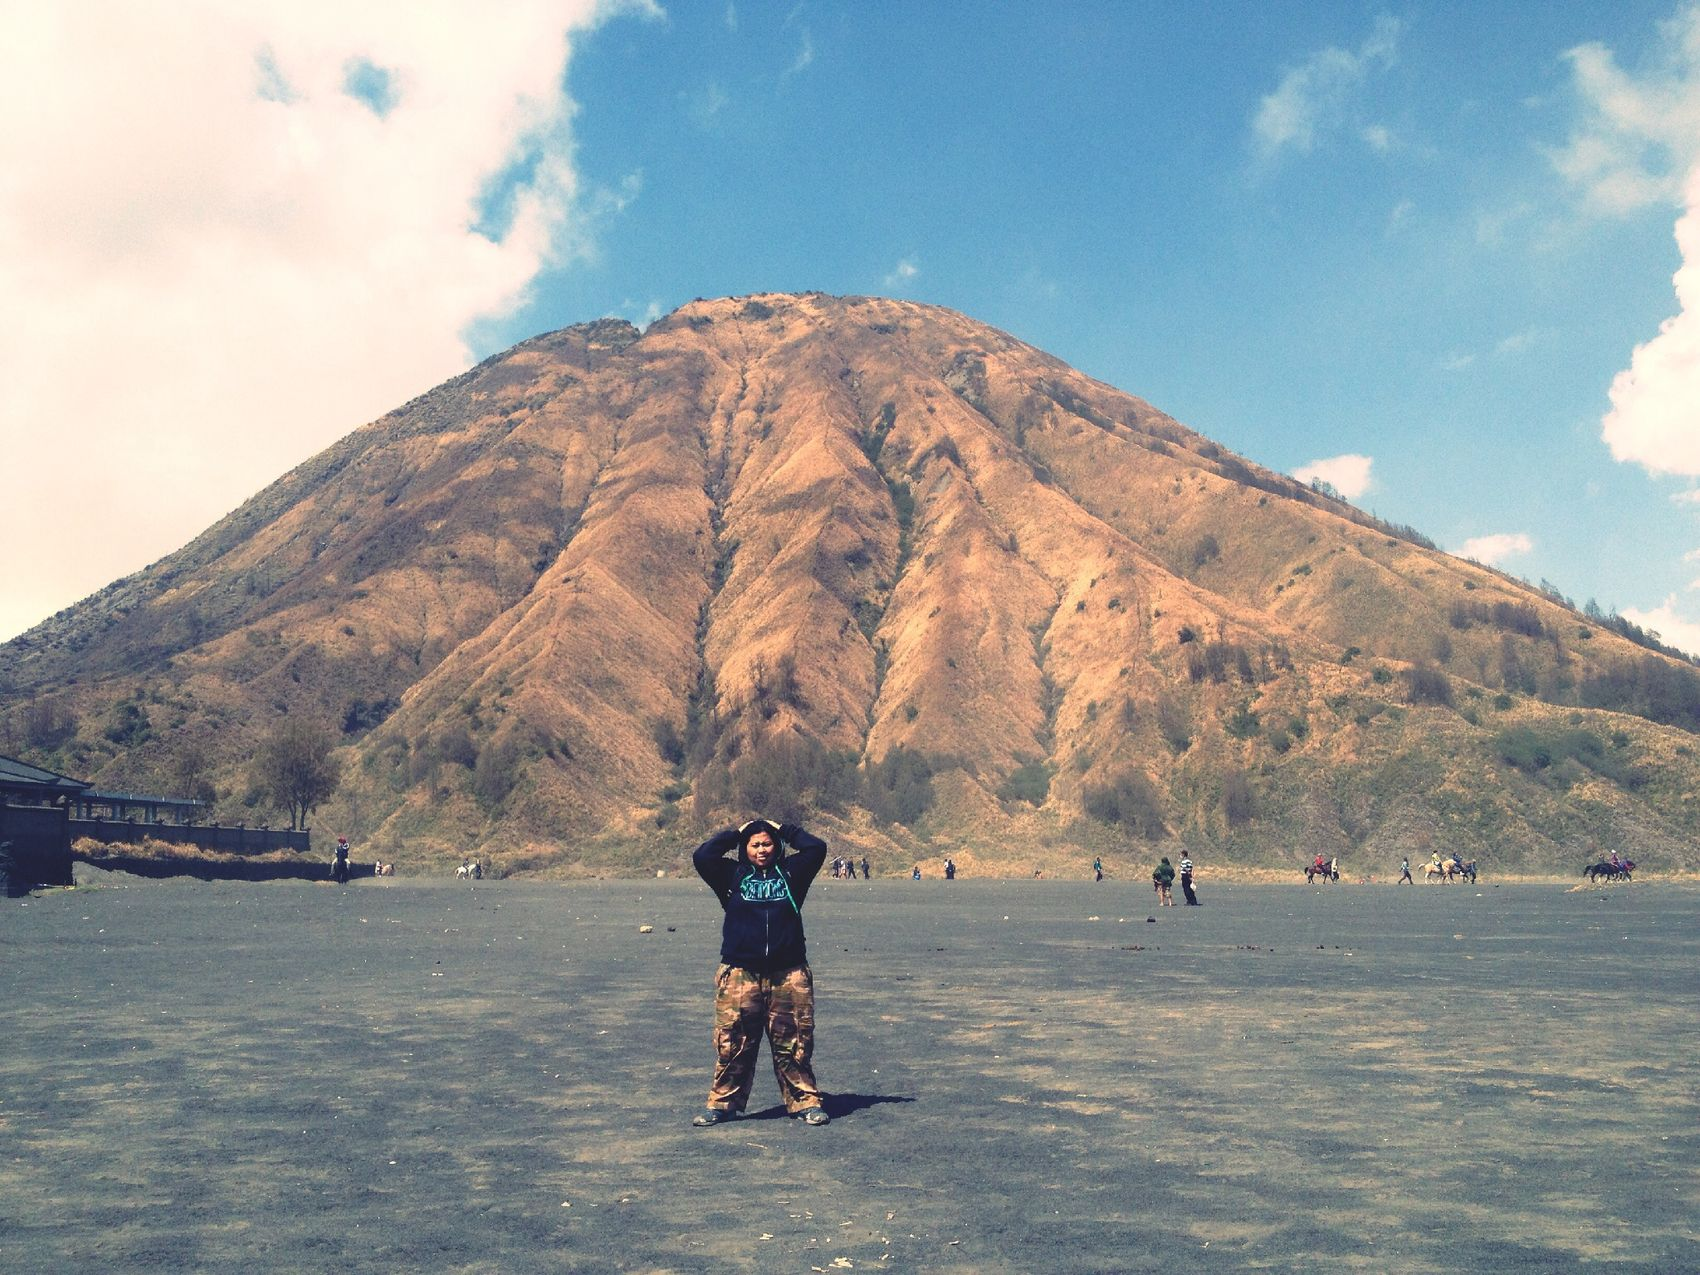 My Life, My Adventure. Lost in East Java (Bromo Mt.) Adventure Get Lost My Life Journey Traveling Amateur Traveler Mountains Blue Sky Clouds Cool